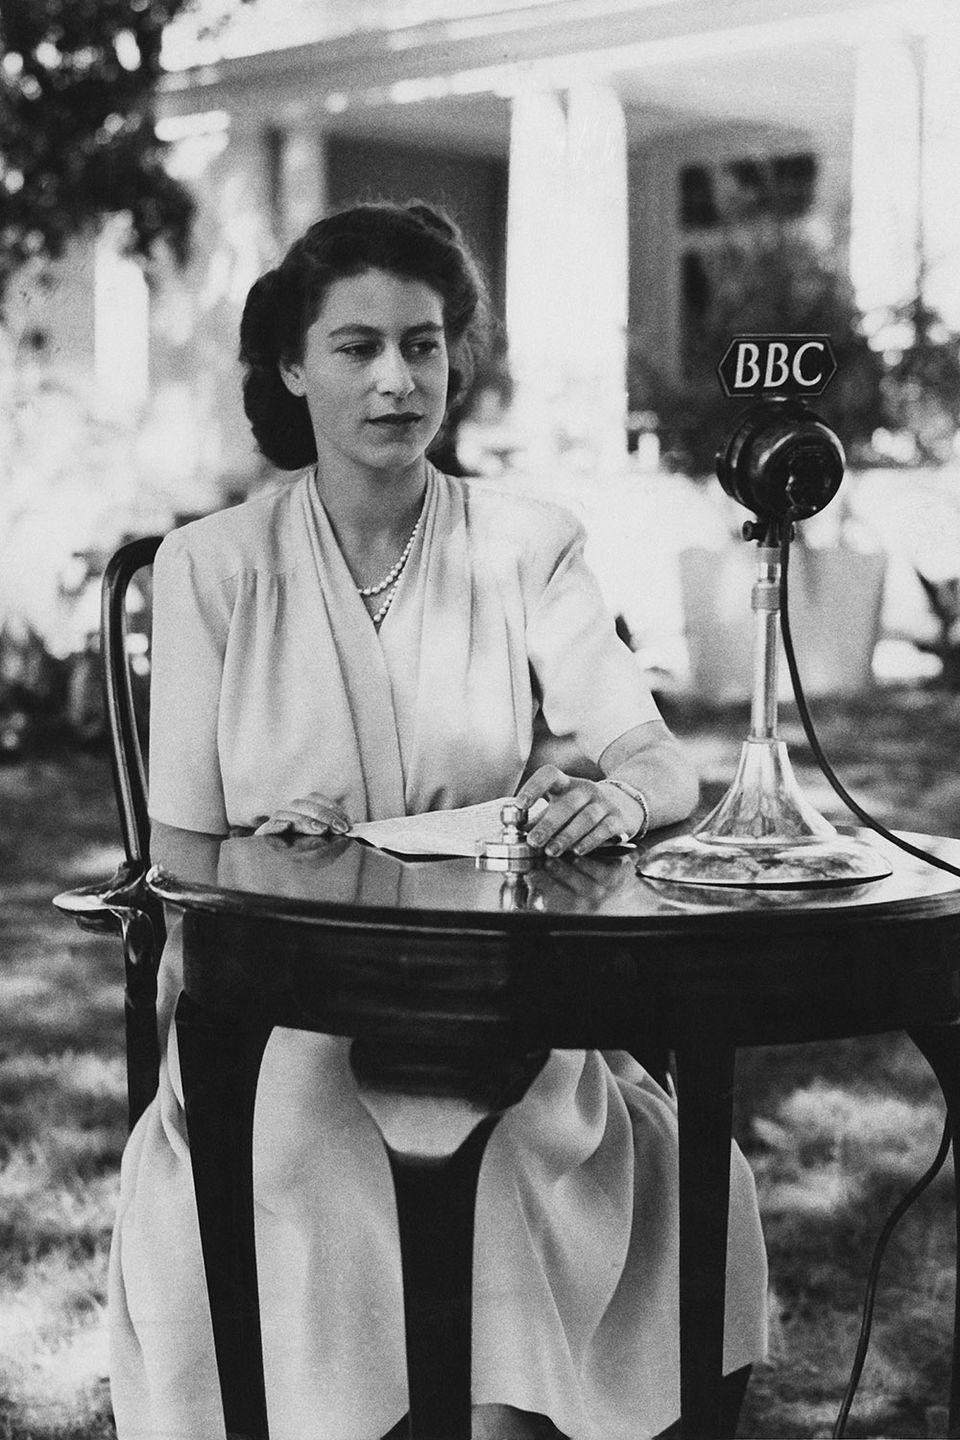 <p>The Princess wore a knee-length dress and pearl necklace when she hopped on the BBC radio to make a broadcast from the gardens of Government House in Cape Town. </p>